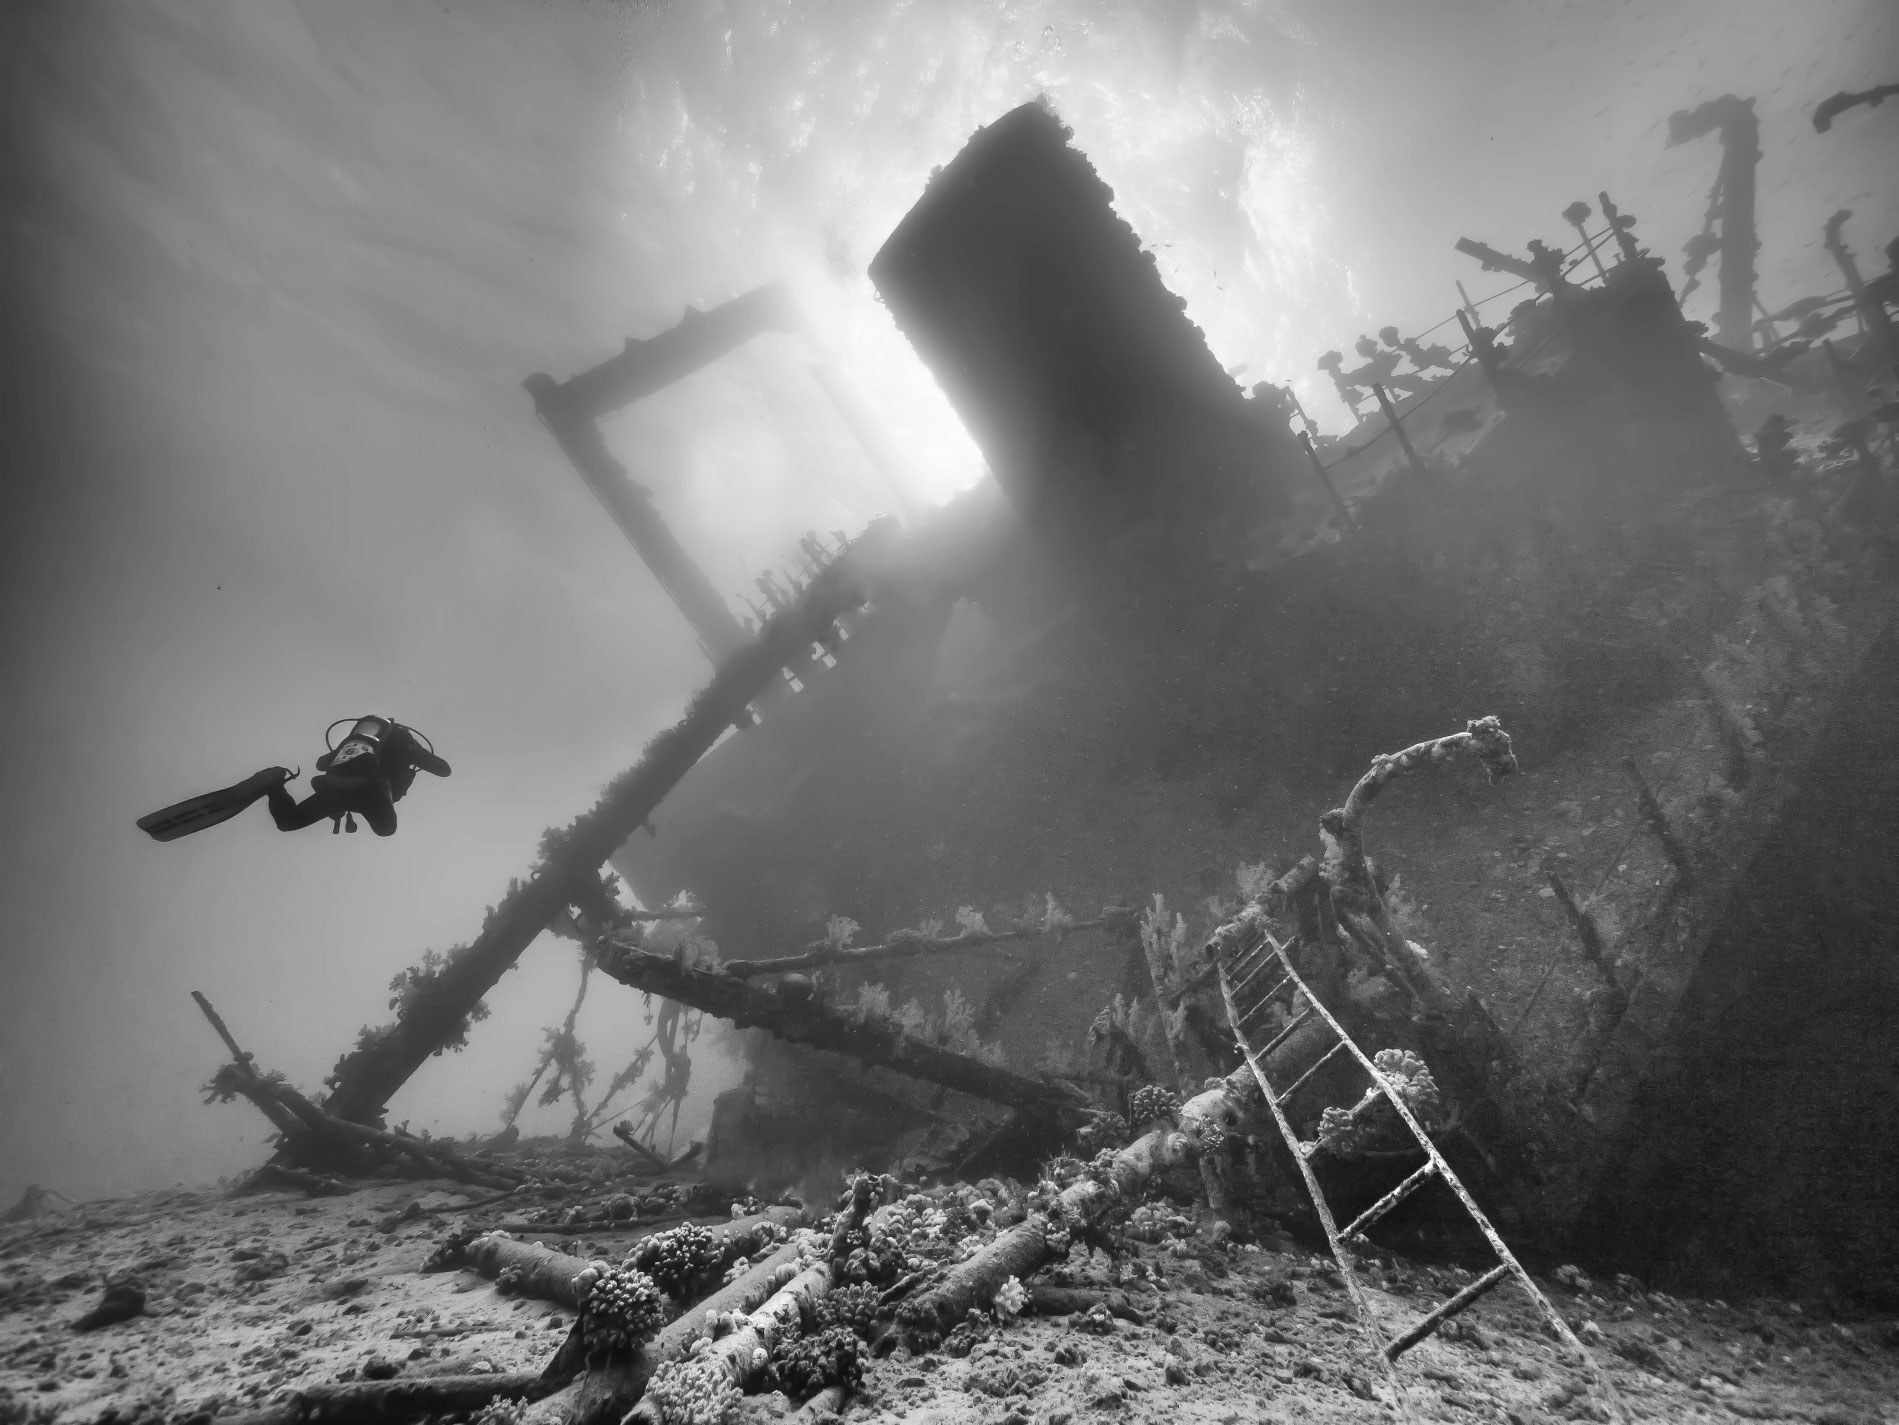 Wreck-of-the-Gianis-D-2